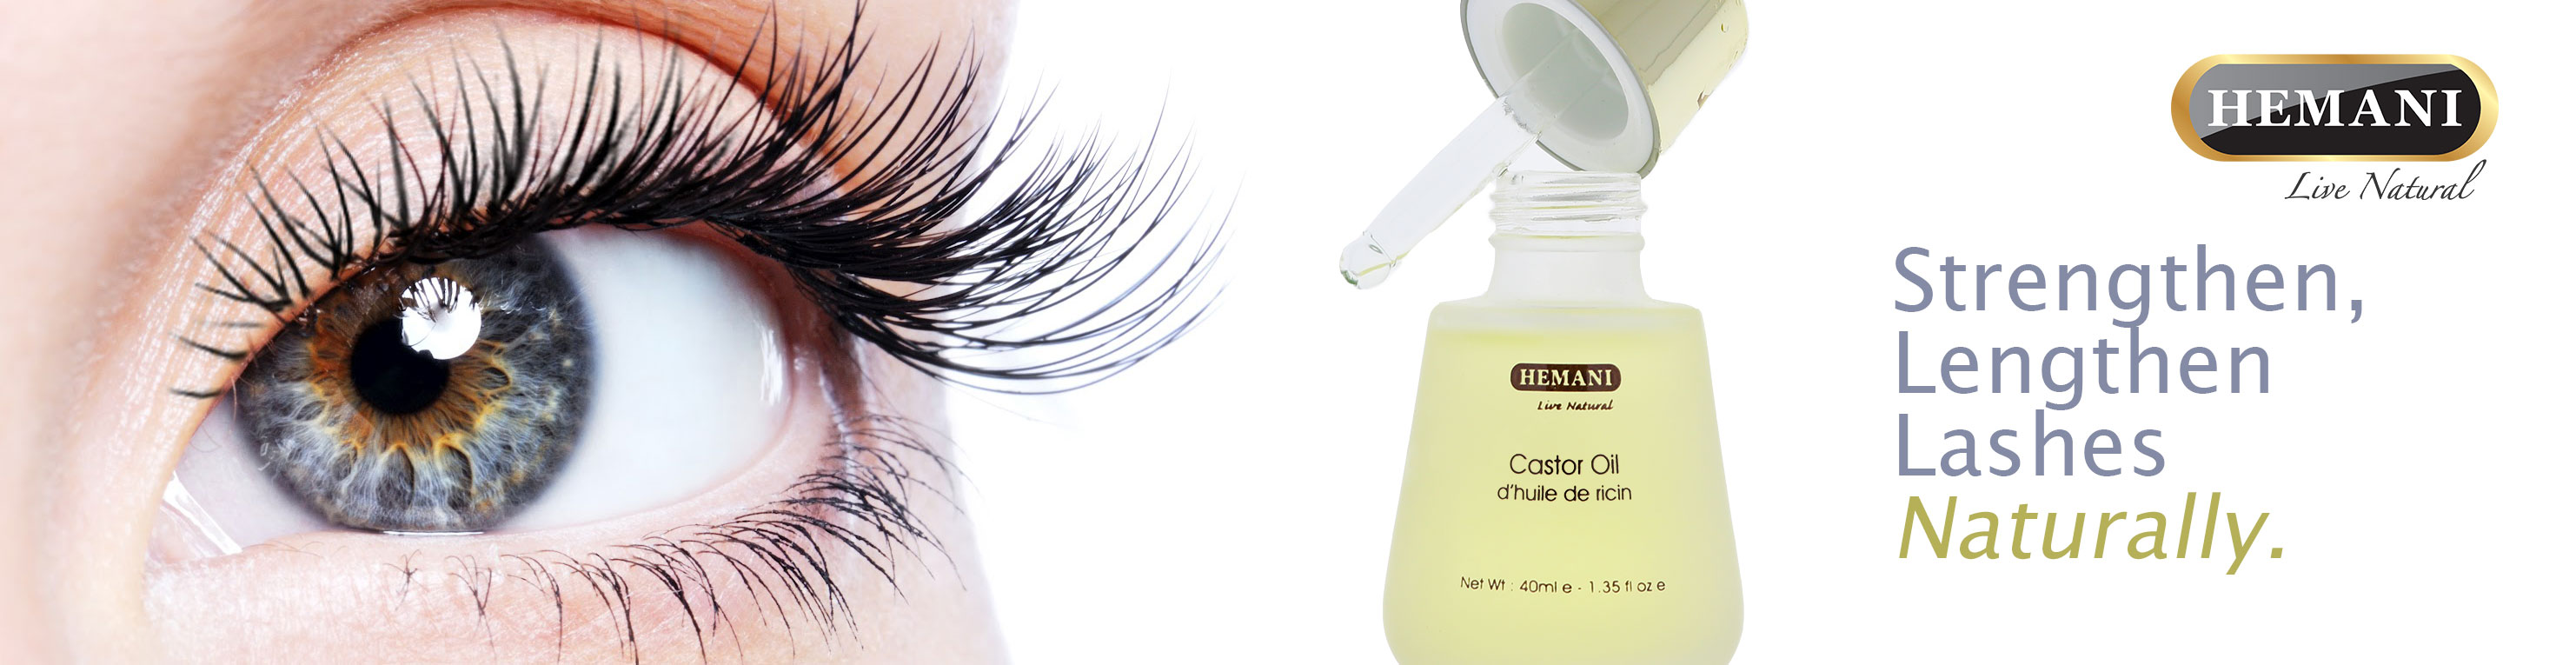 castor-oil-banner-lashes-2-crop.jpg